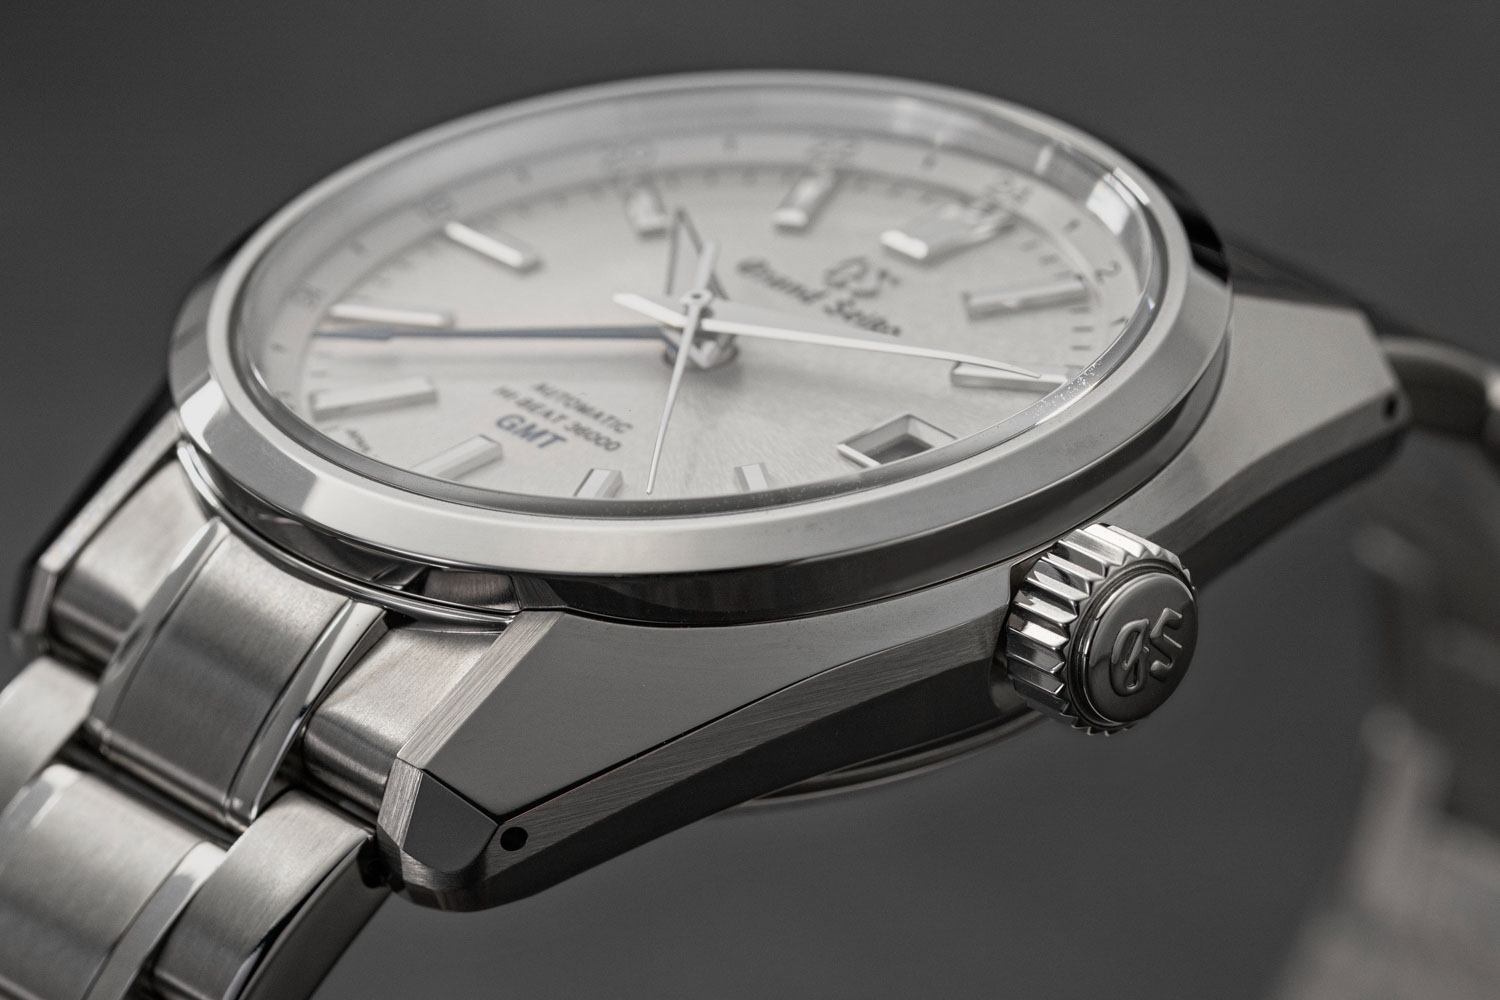 The case of the Grand Seiko Hi-Beat SBGJ201 features the sharp angular facets and knife edge caseband; case and bracelet are crafted in steel adding a touch more heft to the experience on the wrist but still evincing the exquisite Zaratsu finish with perfect mirror polishing (©Revolution)